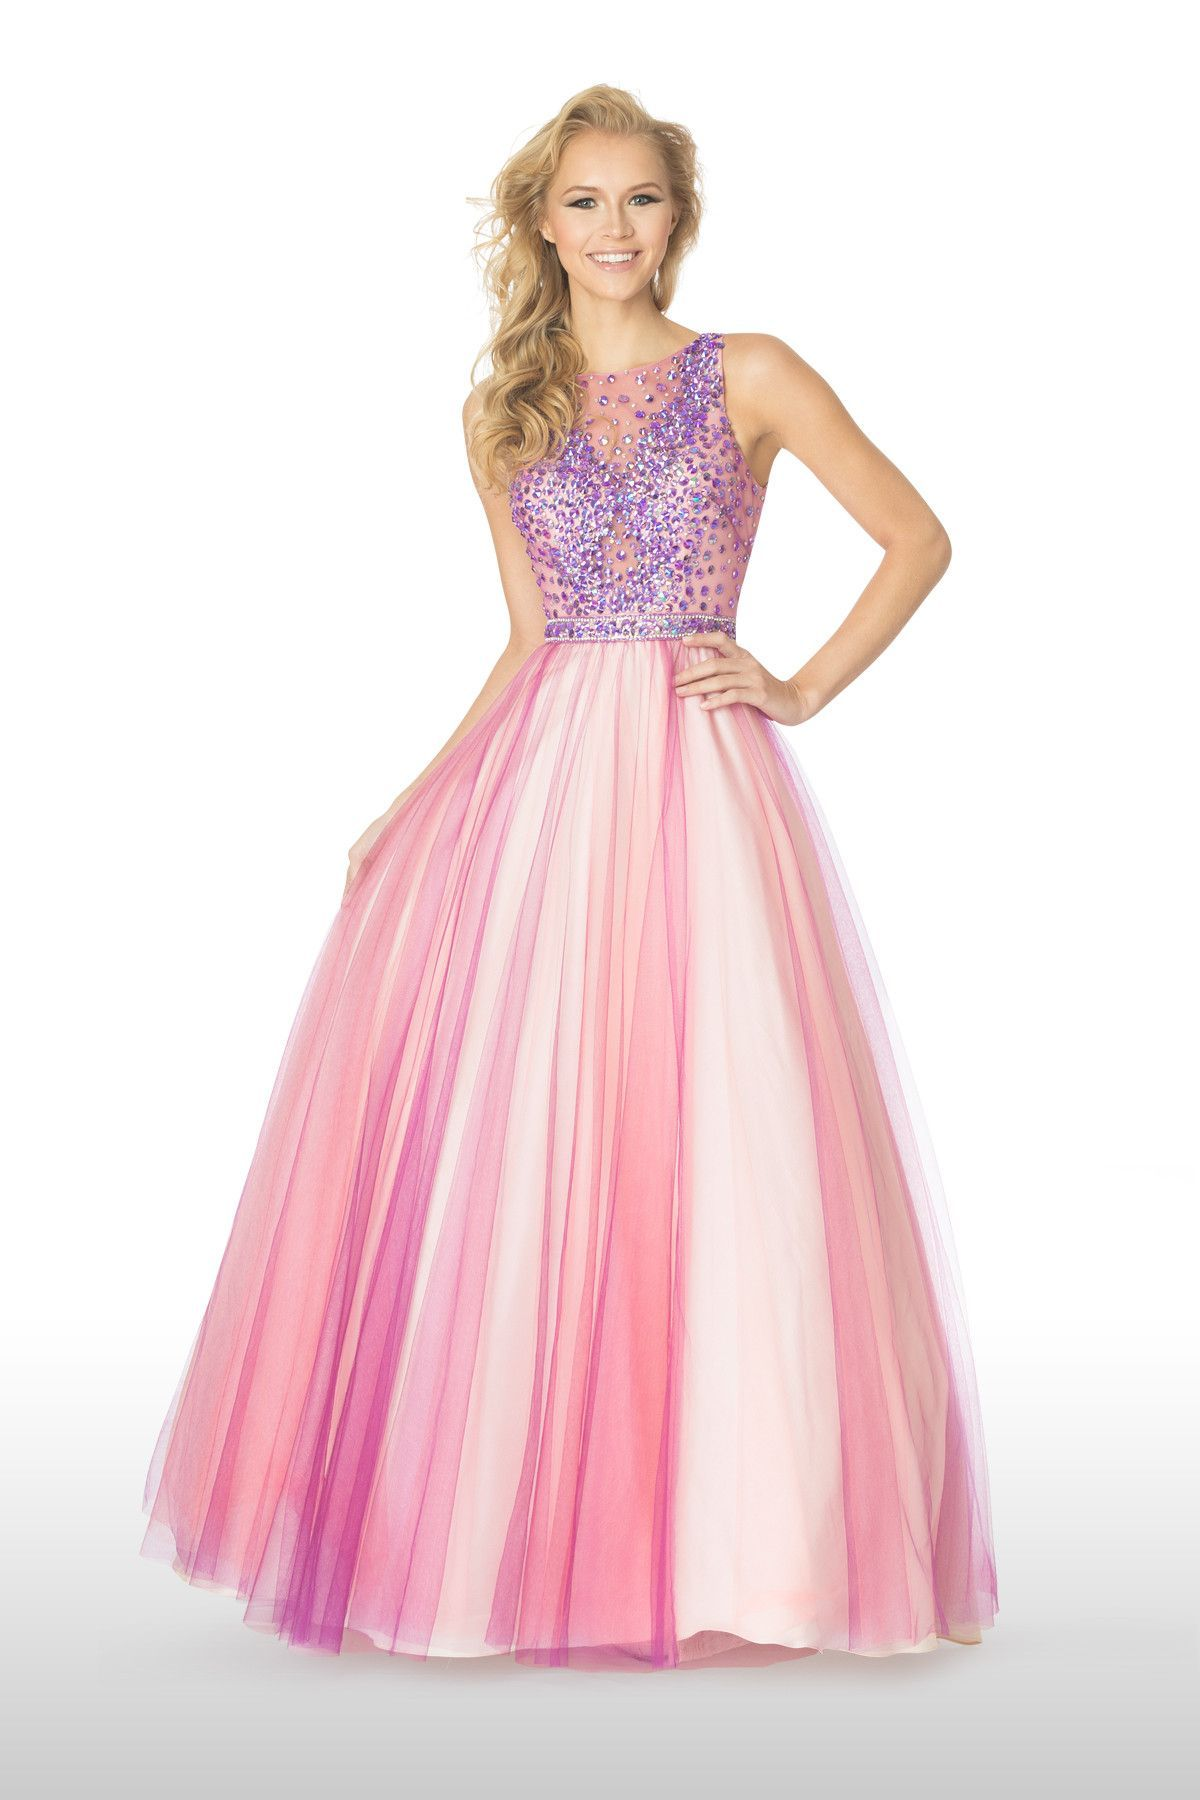 29_65172 Ball Gown   Sparkle Prom dresses   Pinterest   Productos y ...